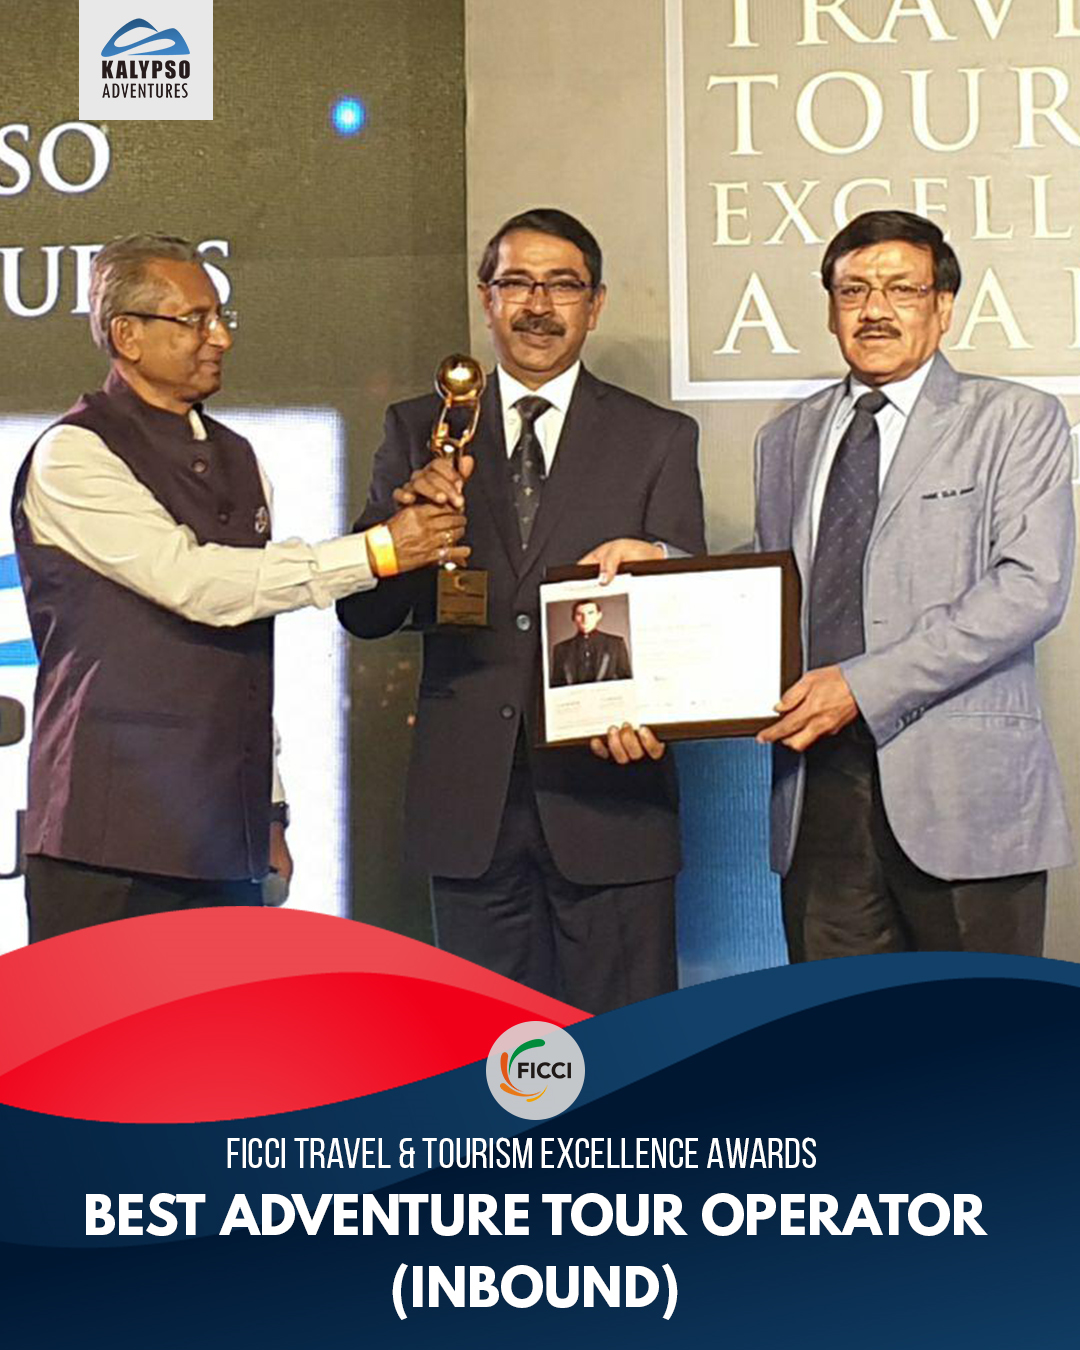 Best Adventure Tour Operator Inbound- FICCI Travel & Tourism Excellence Awards